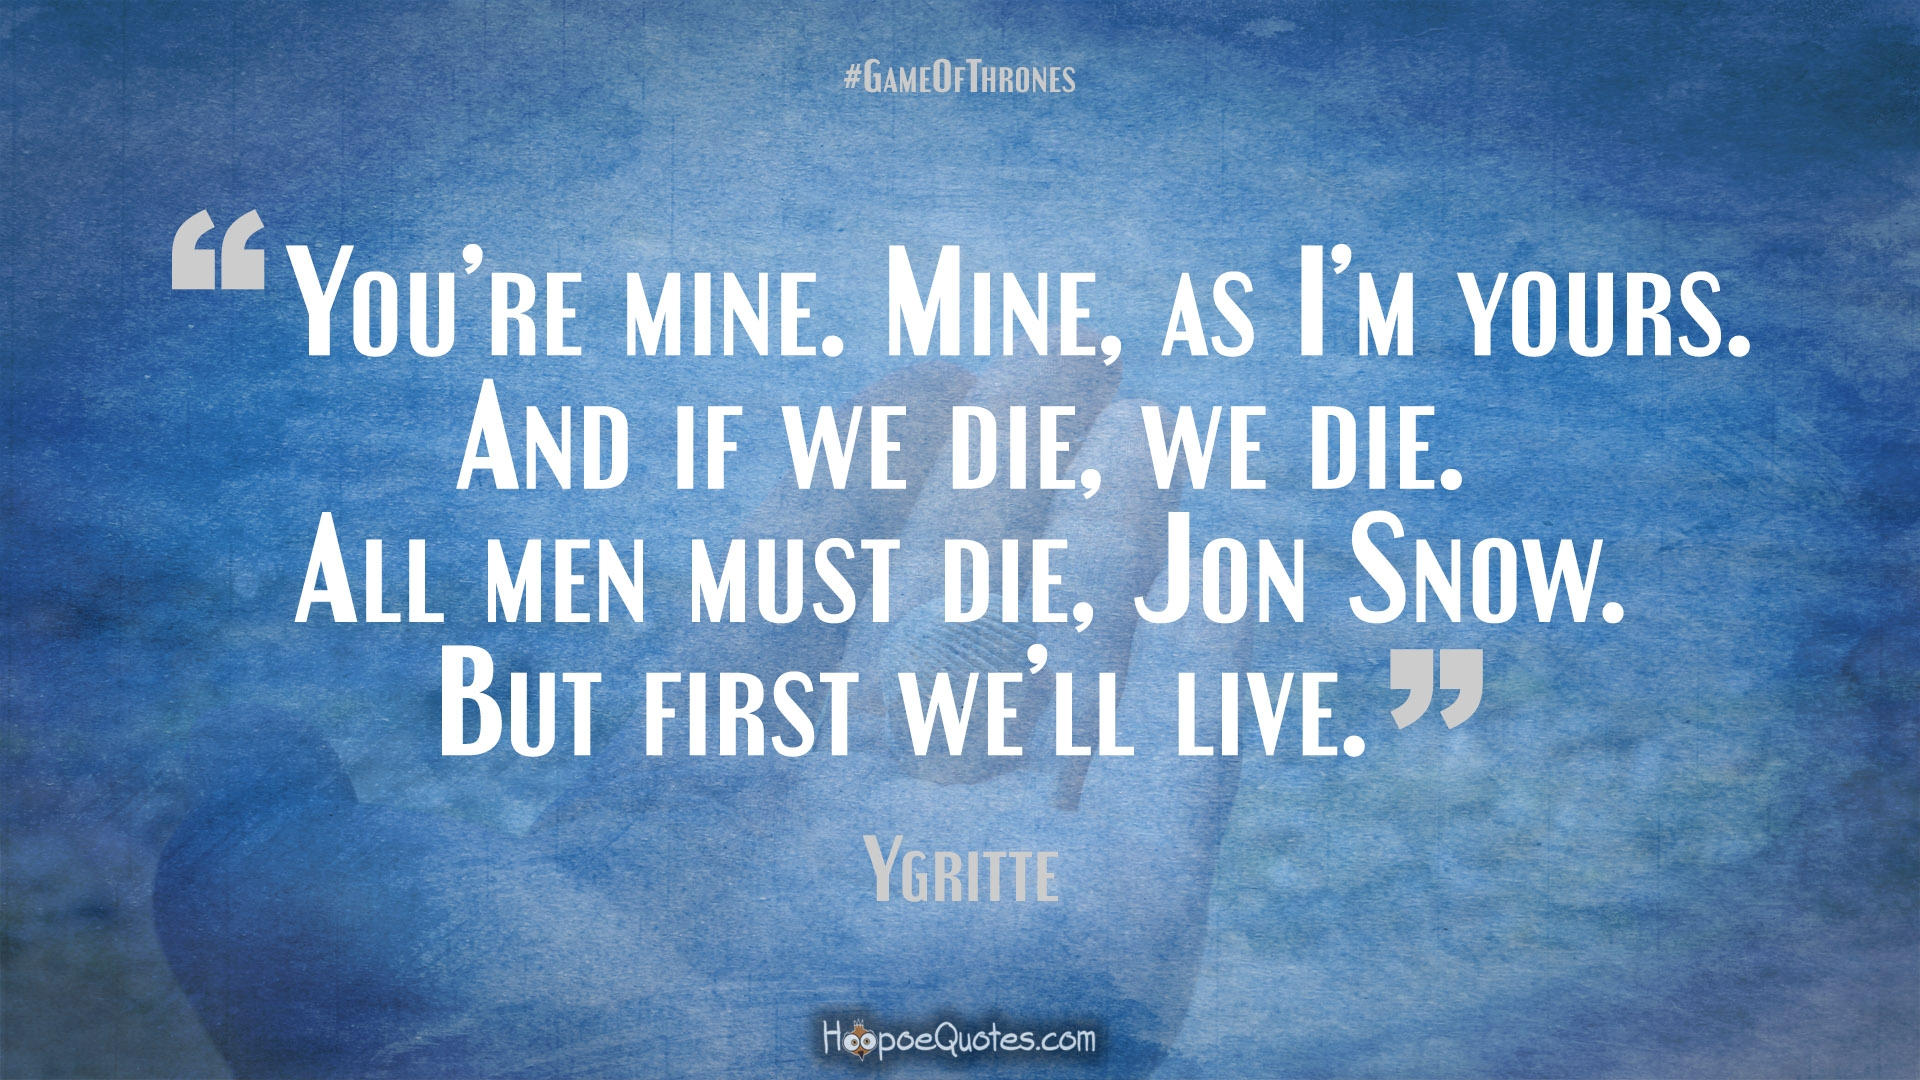 Youre Mine As Im Yours And If We Die All Men Must Jon Snow But First Well Live